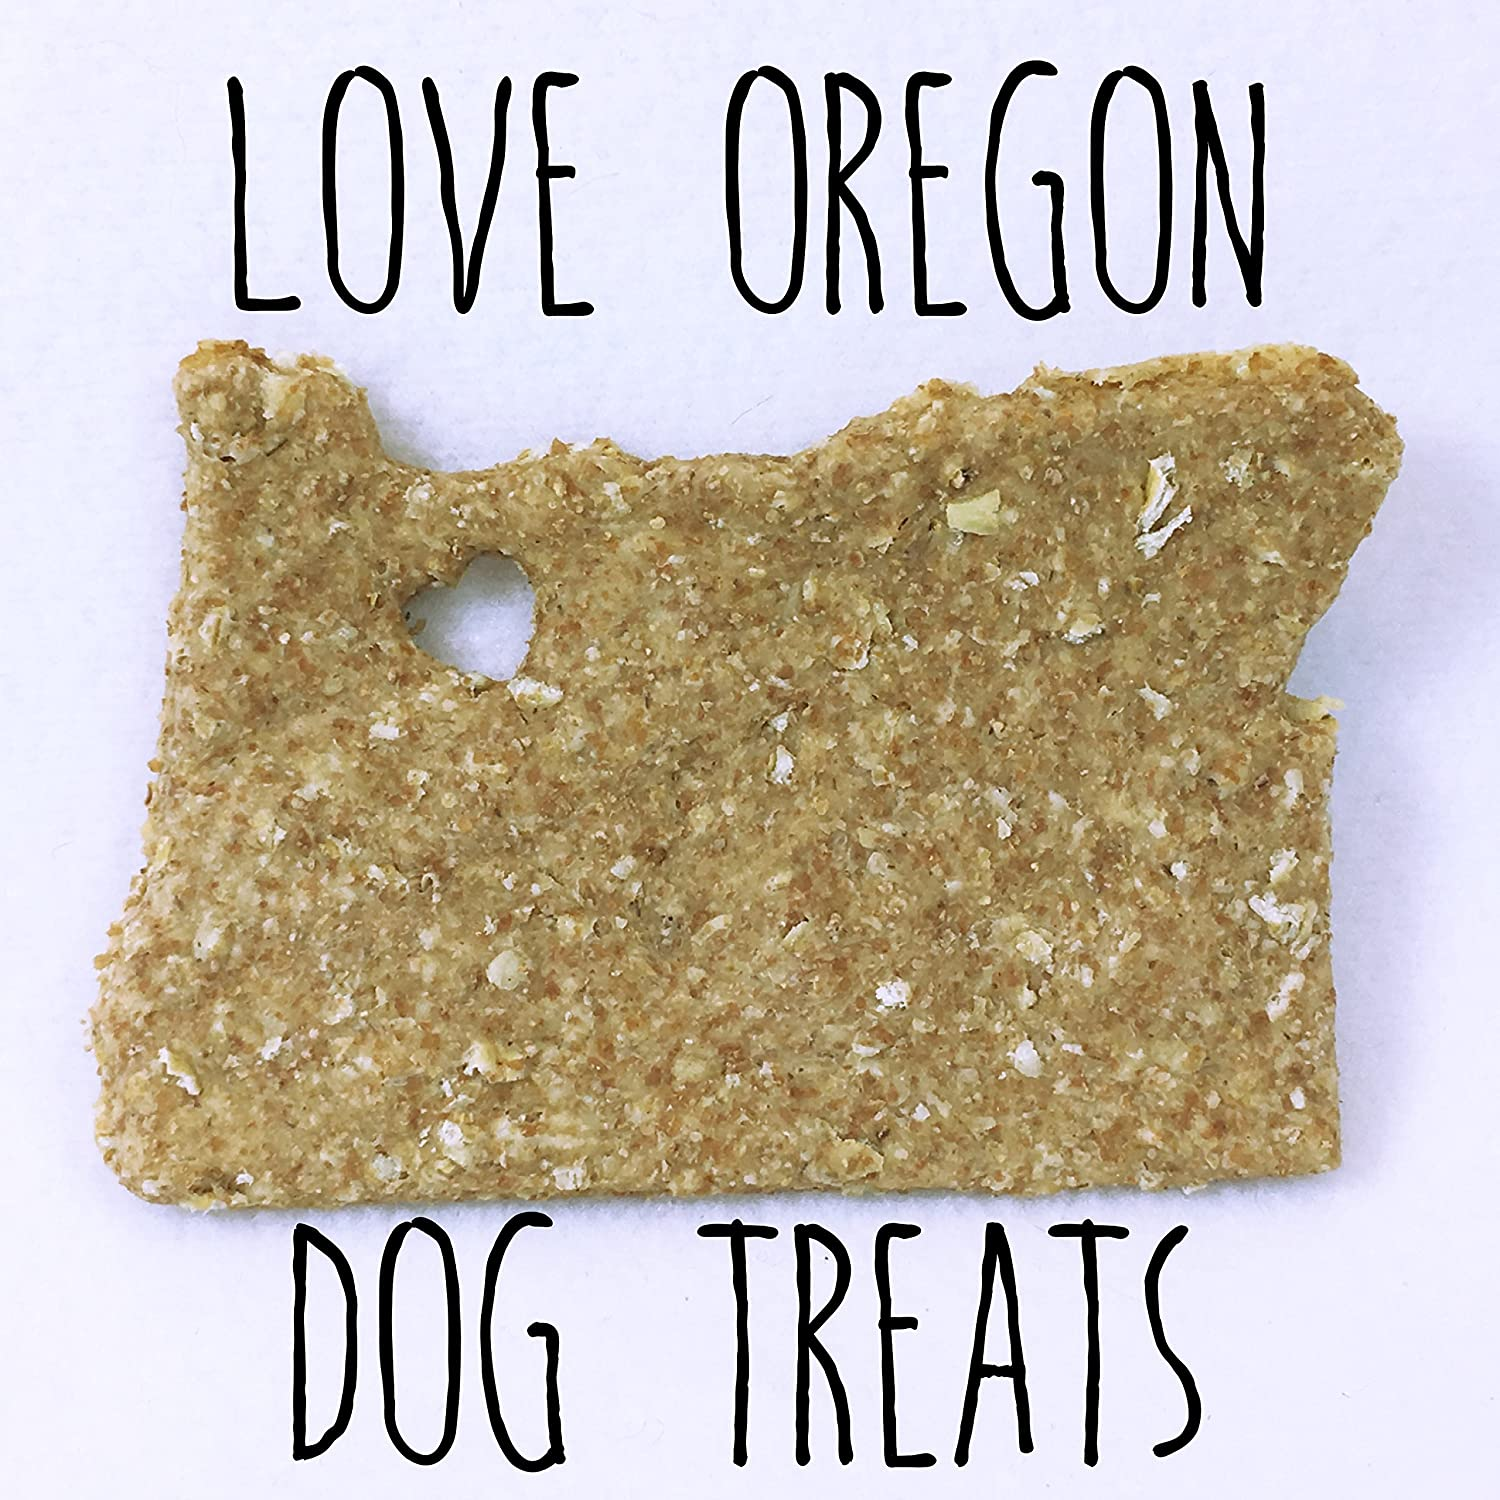 9 Love PDX/Oregon-Shaped Dog Treats/Corn Soy and Dairy Free/Vegan Options/No Added Preservatives, Fillers or Color